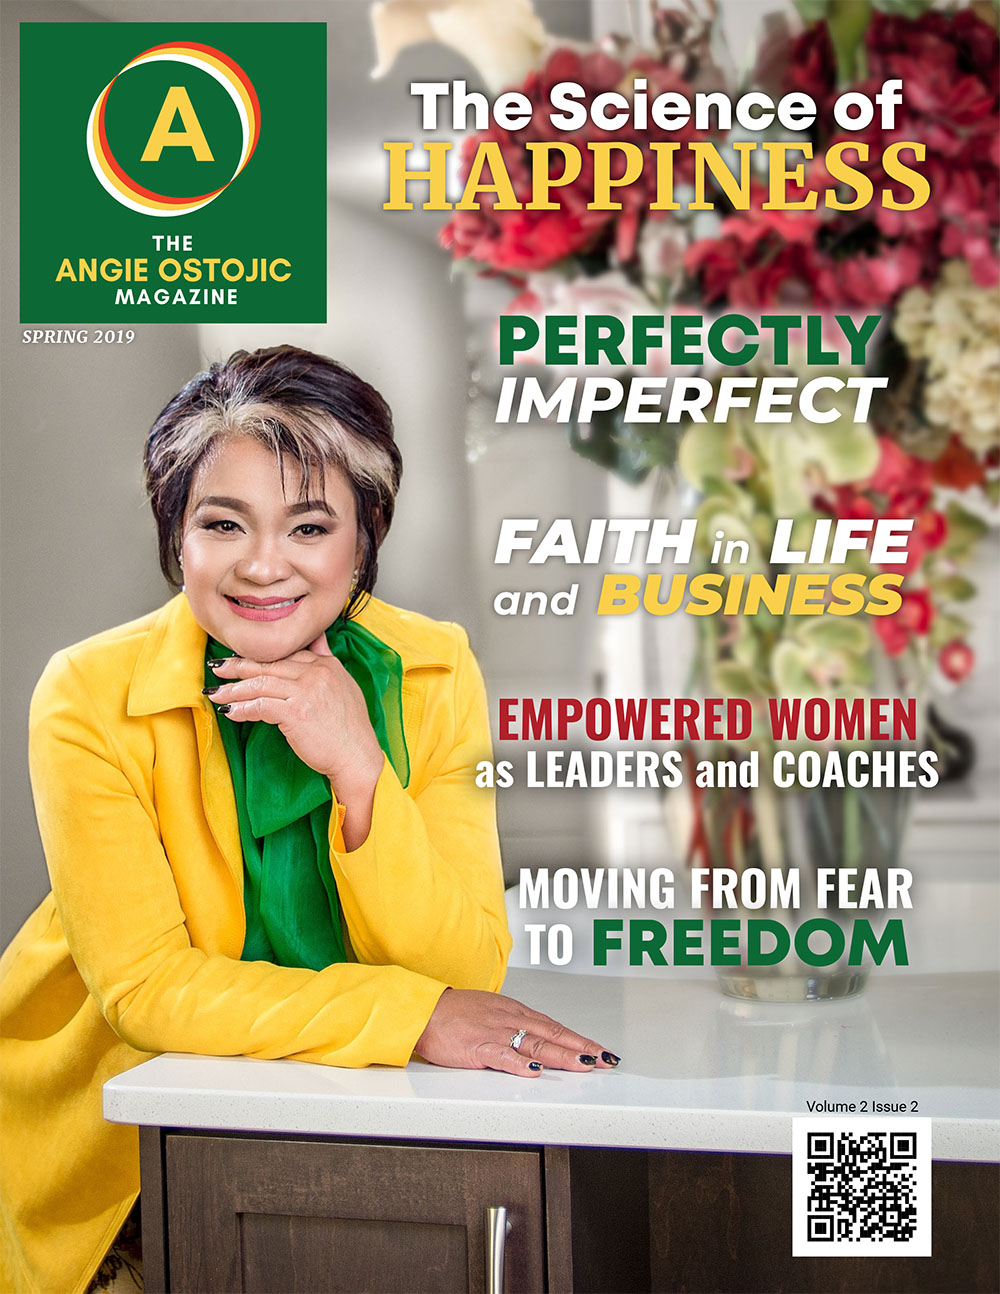 Free Download copy of AO magazine spring 2019